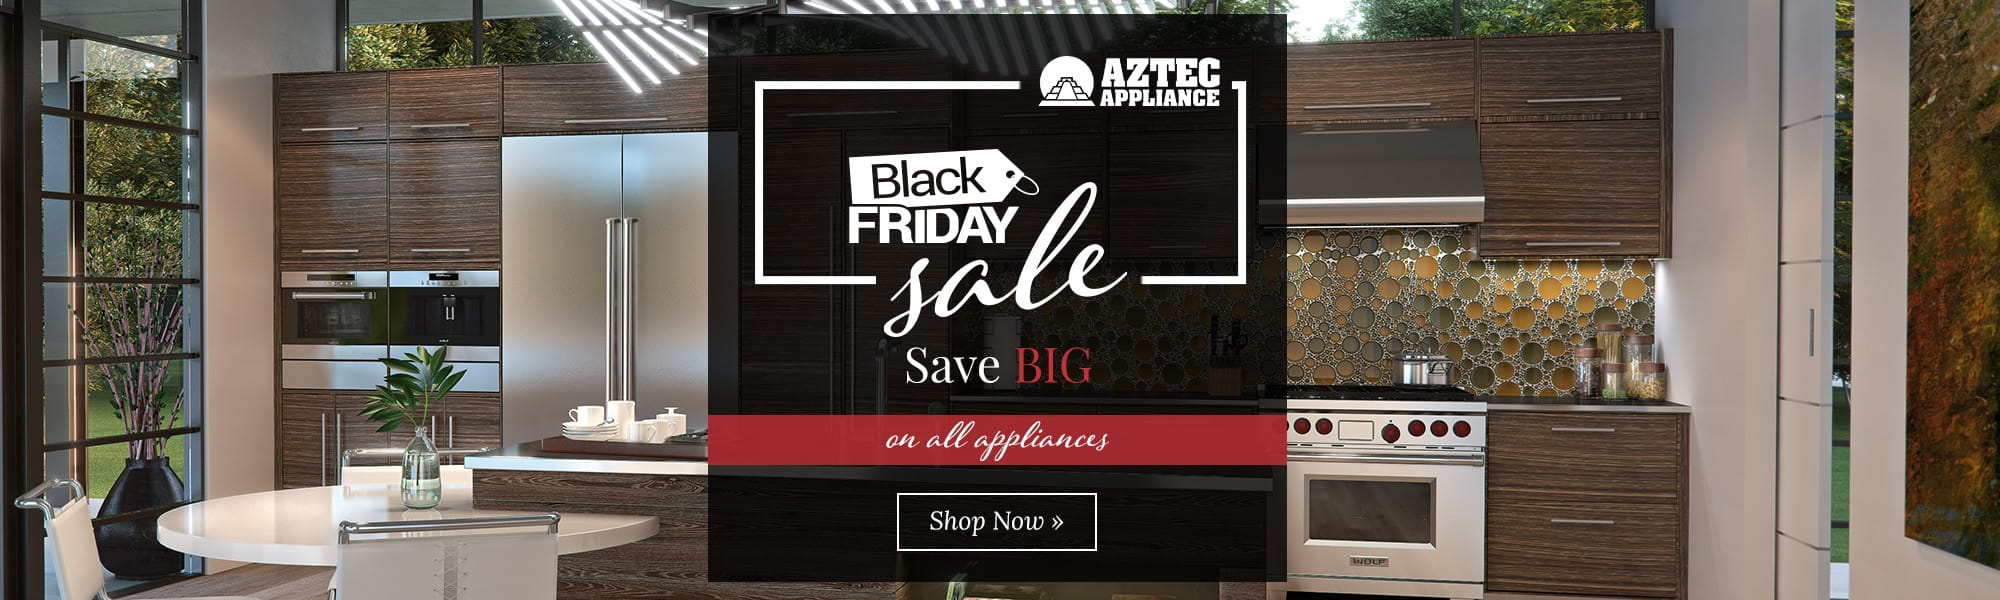 Aztec Appliance | Itu0027s All About The Customer | Save On Appliances